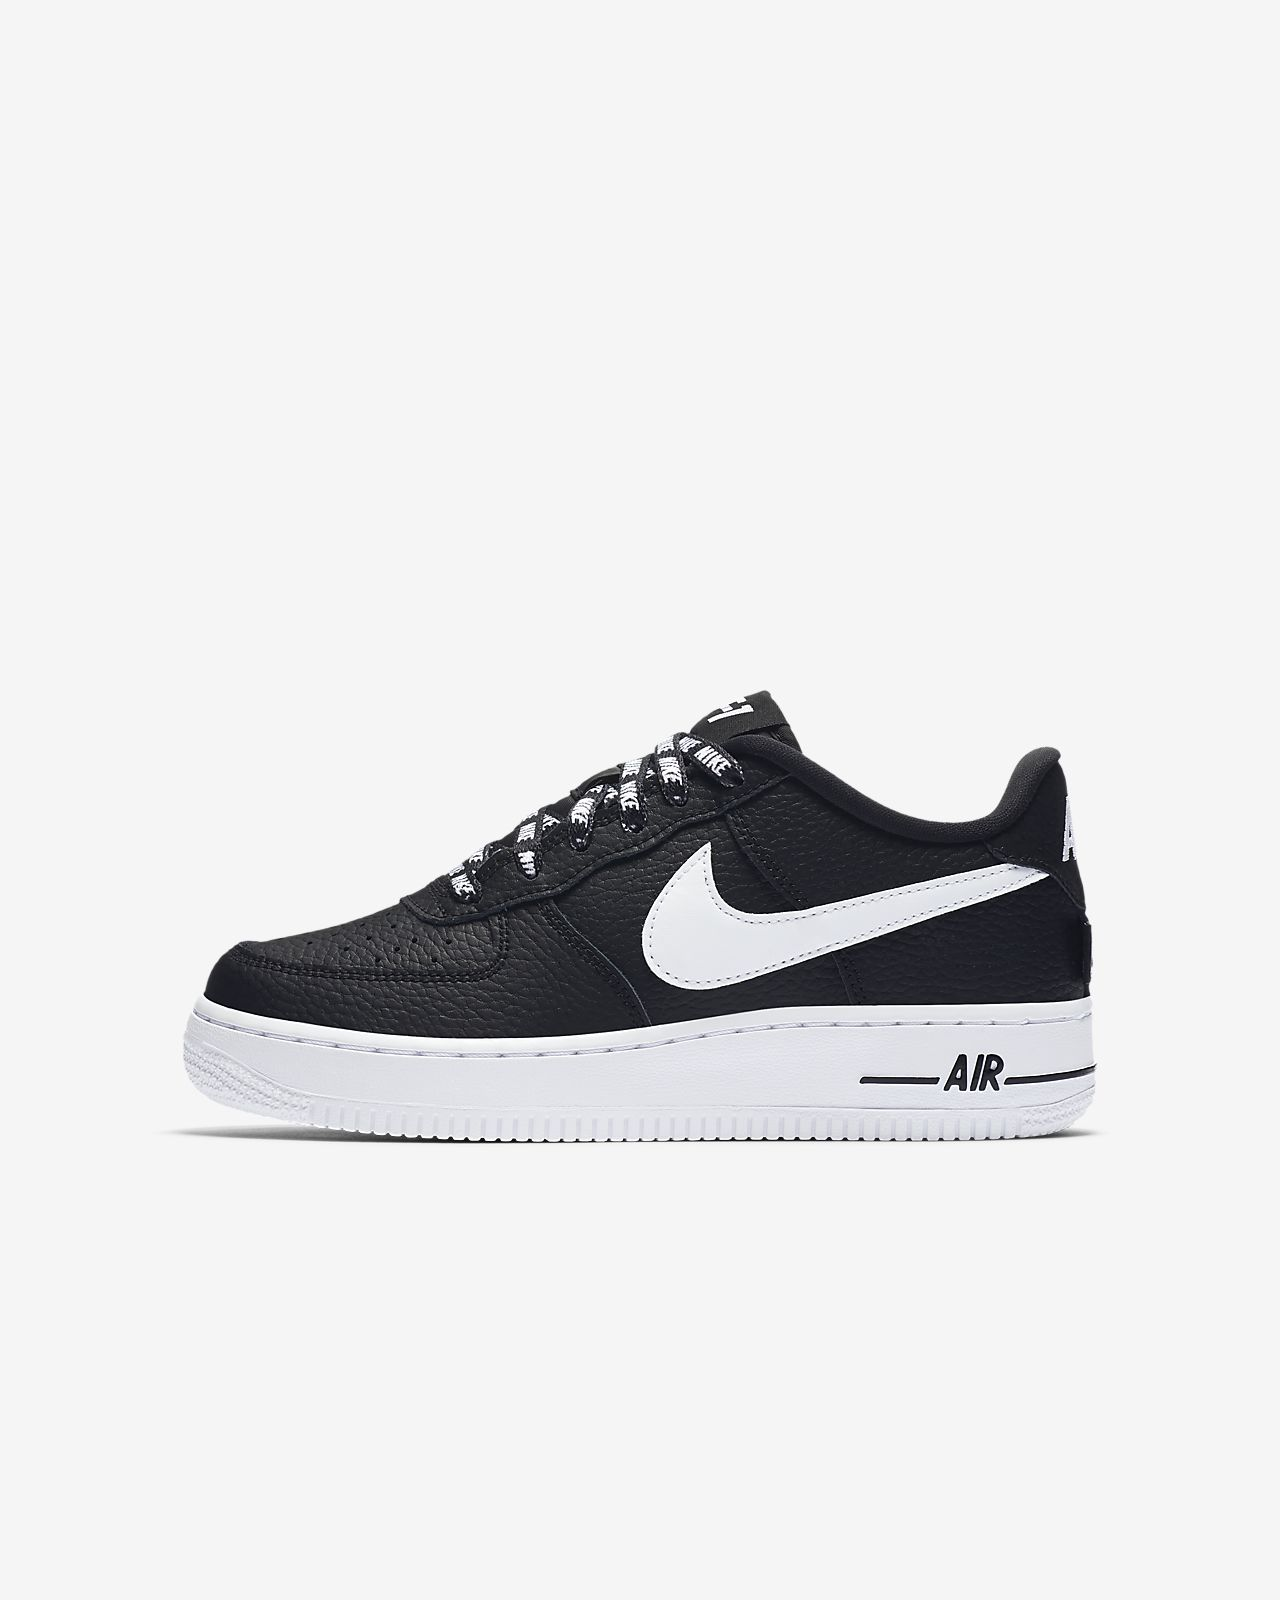 Chaussures Blanc Force Nike Air En Taille 35 Hommes bz2GuT4lo